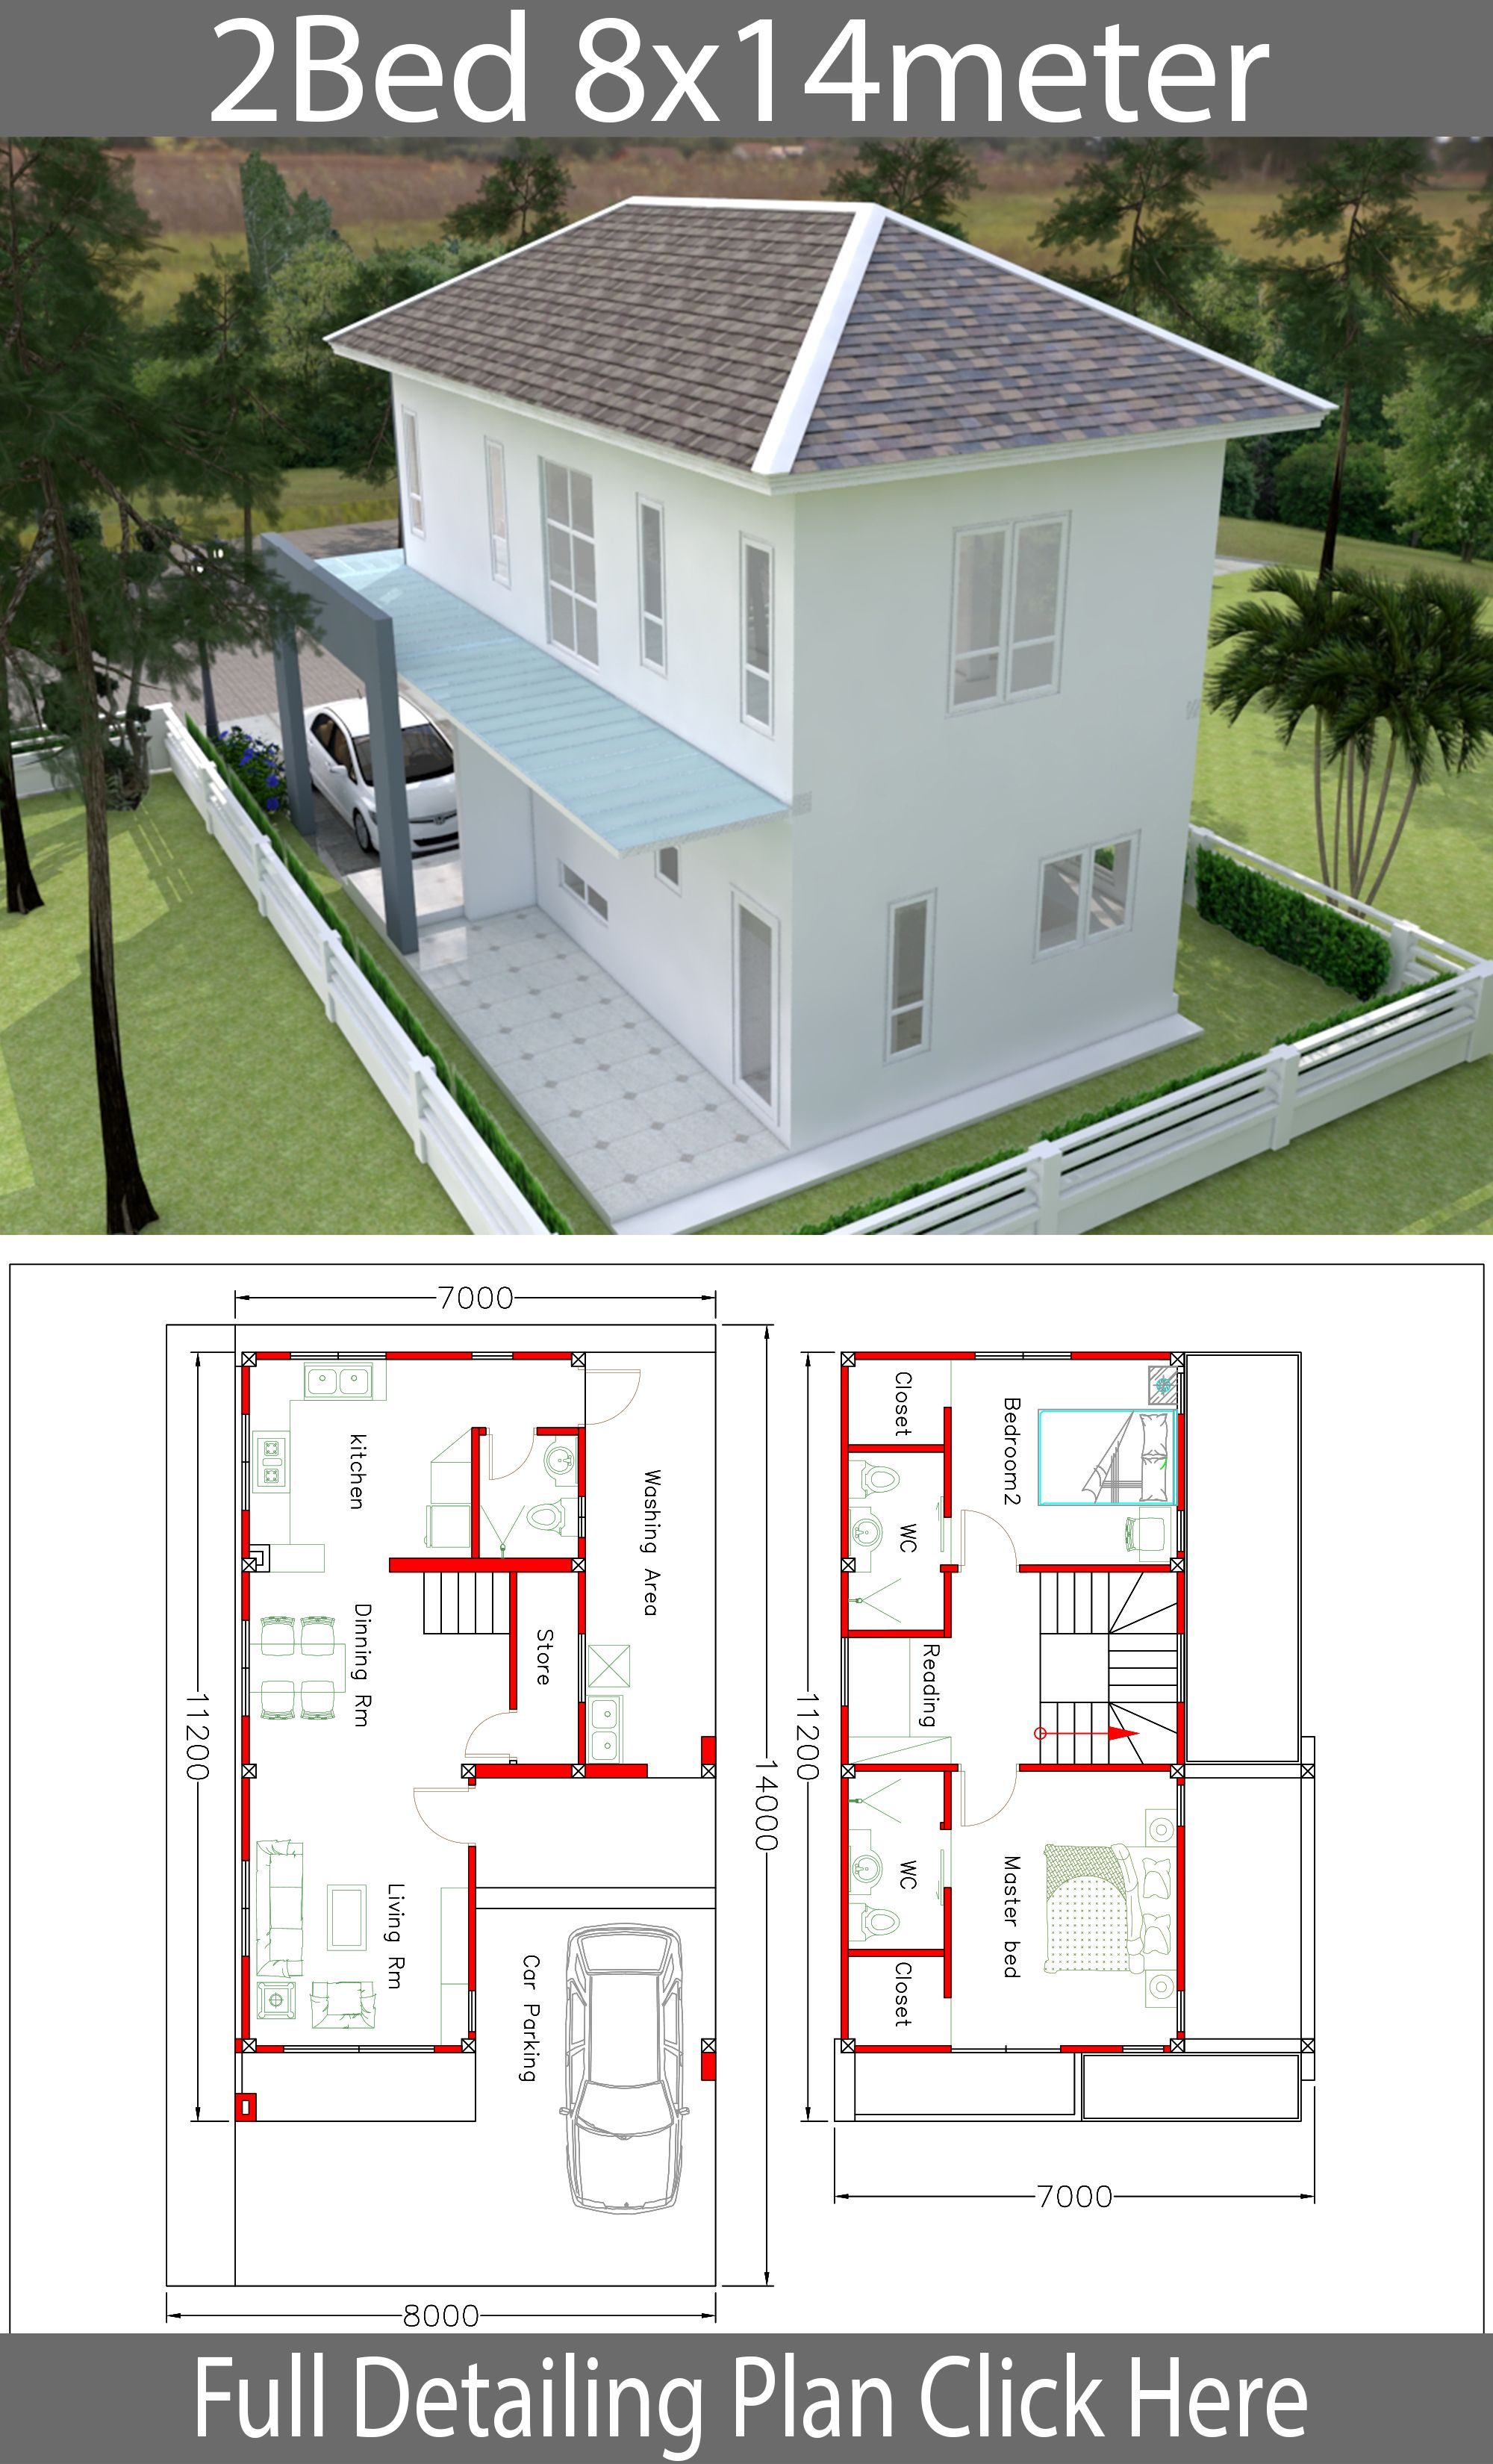 House Plans 8x14m With 2 Bedrooms House Plans Free Downloads Architectural Design House Plans House Design House Plans